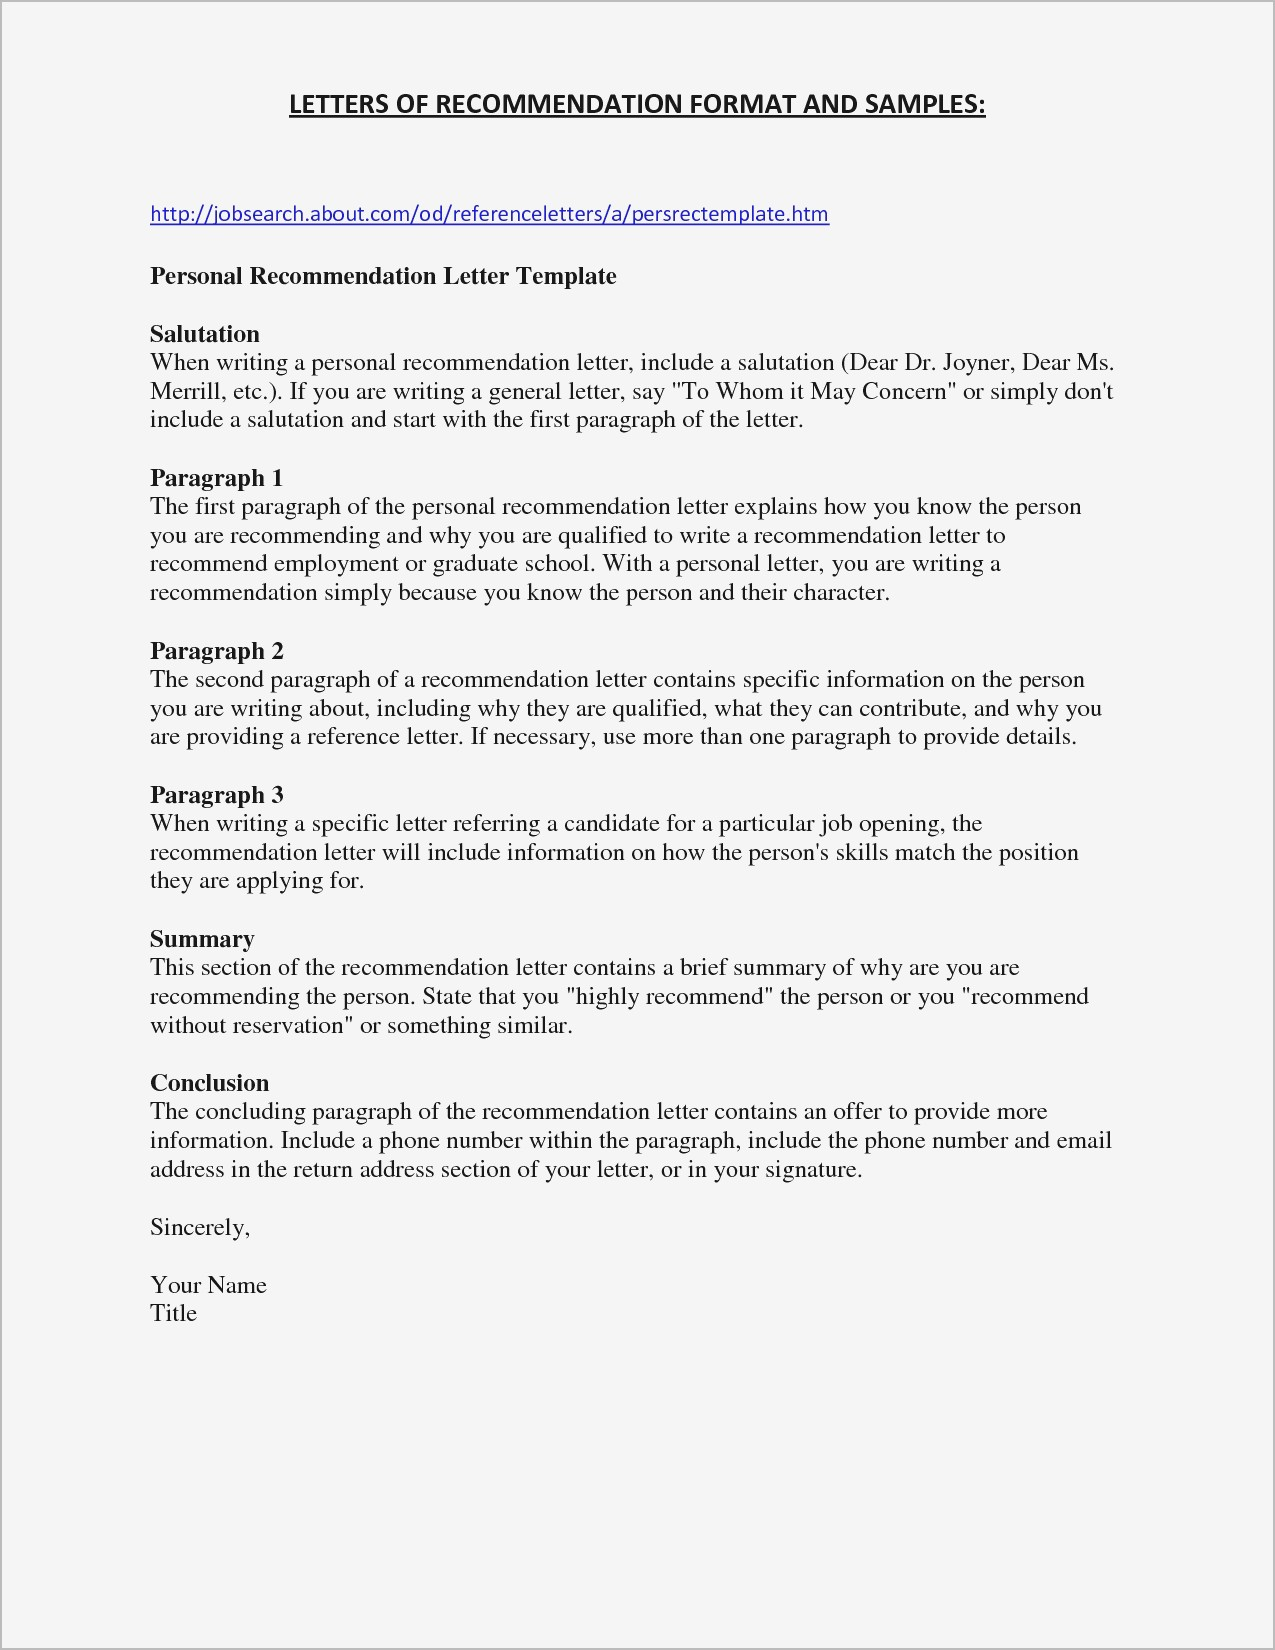 letter of recommendation template for student Collection-Nursing School Re mendation Letter From Employer Re mendation Letter Nursing School – Letter Re mendation Template For Student 13-c